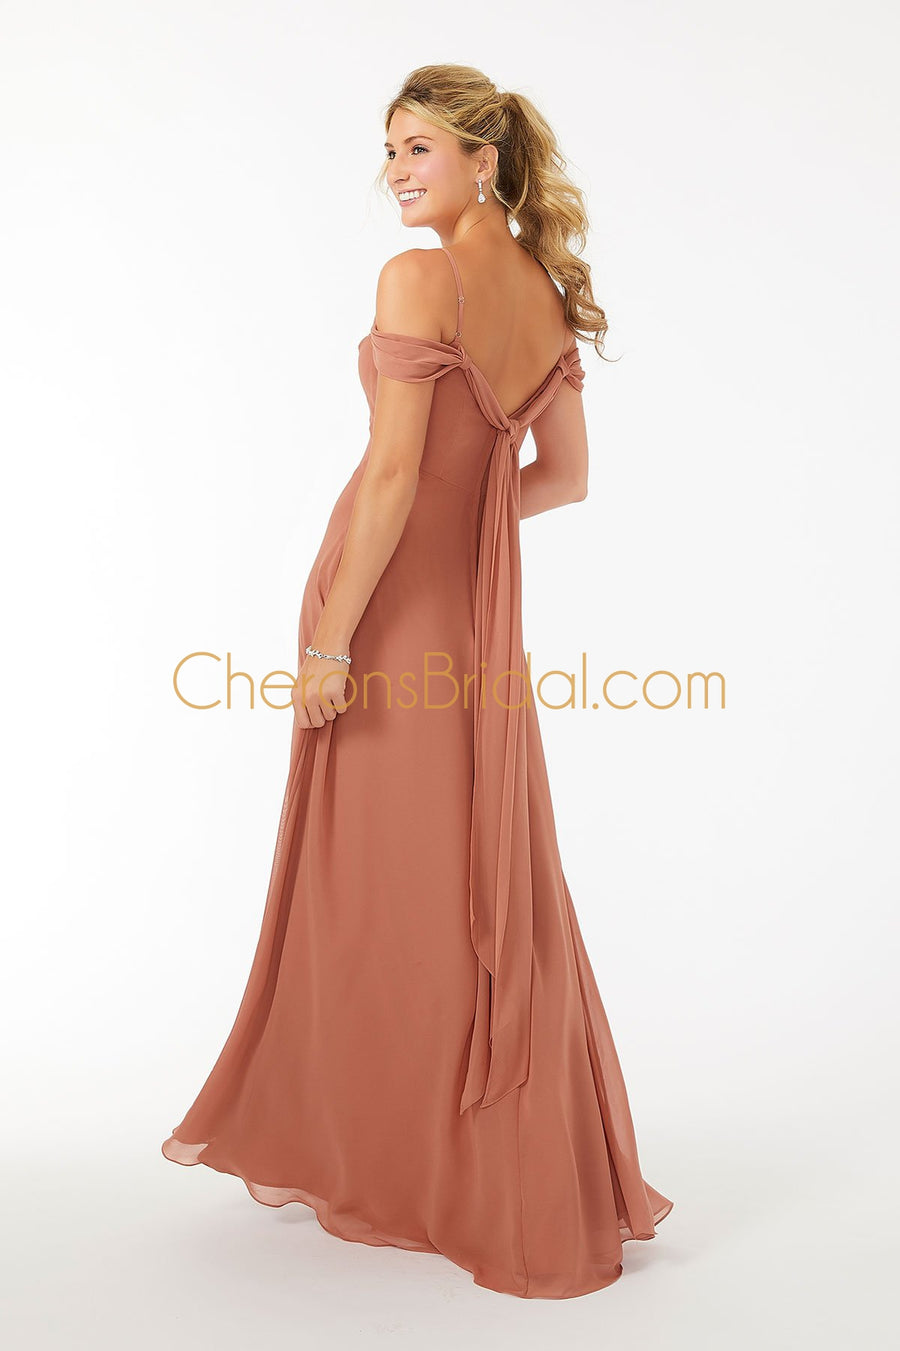 Morilee - 21703 - Cheron's Bridal, Bridesmaids Dress